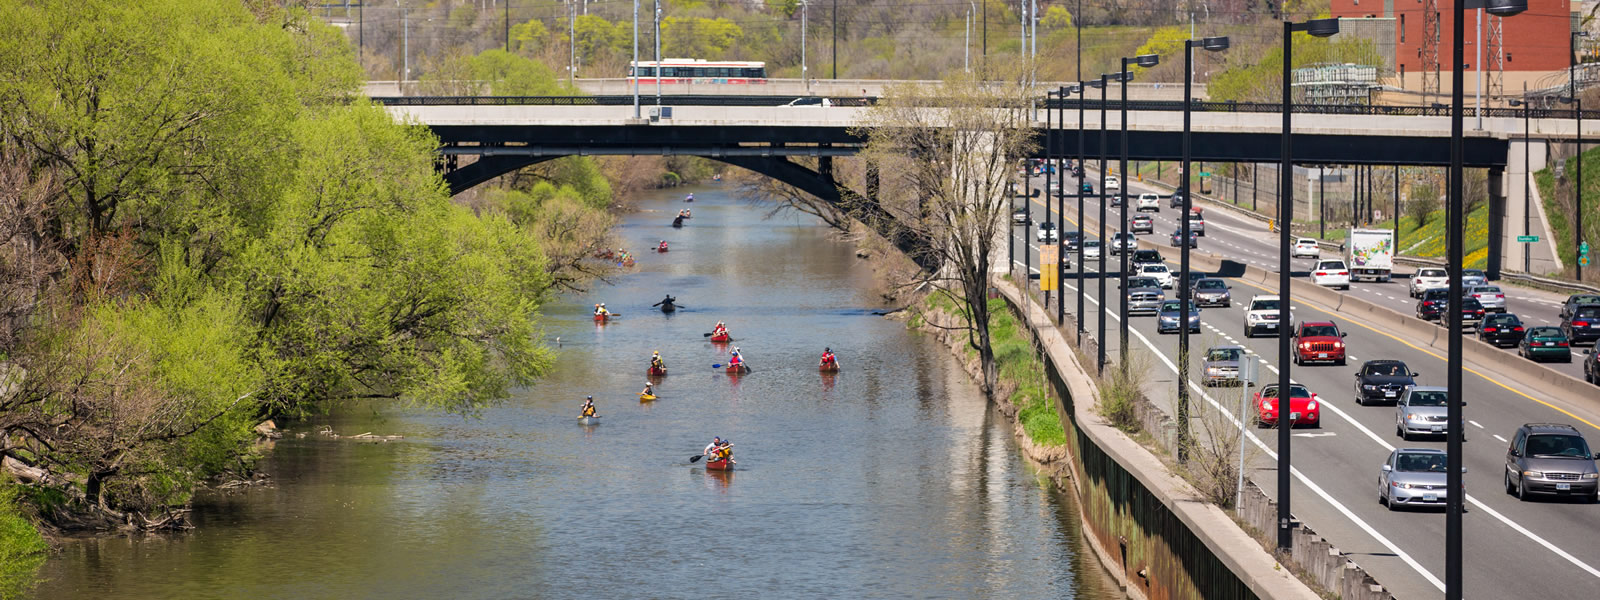 The Don River